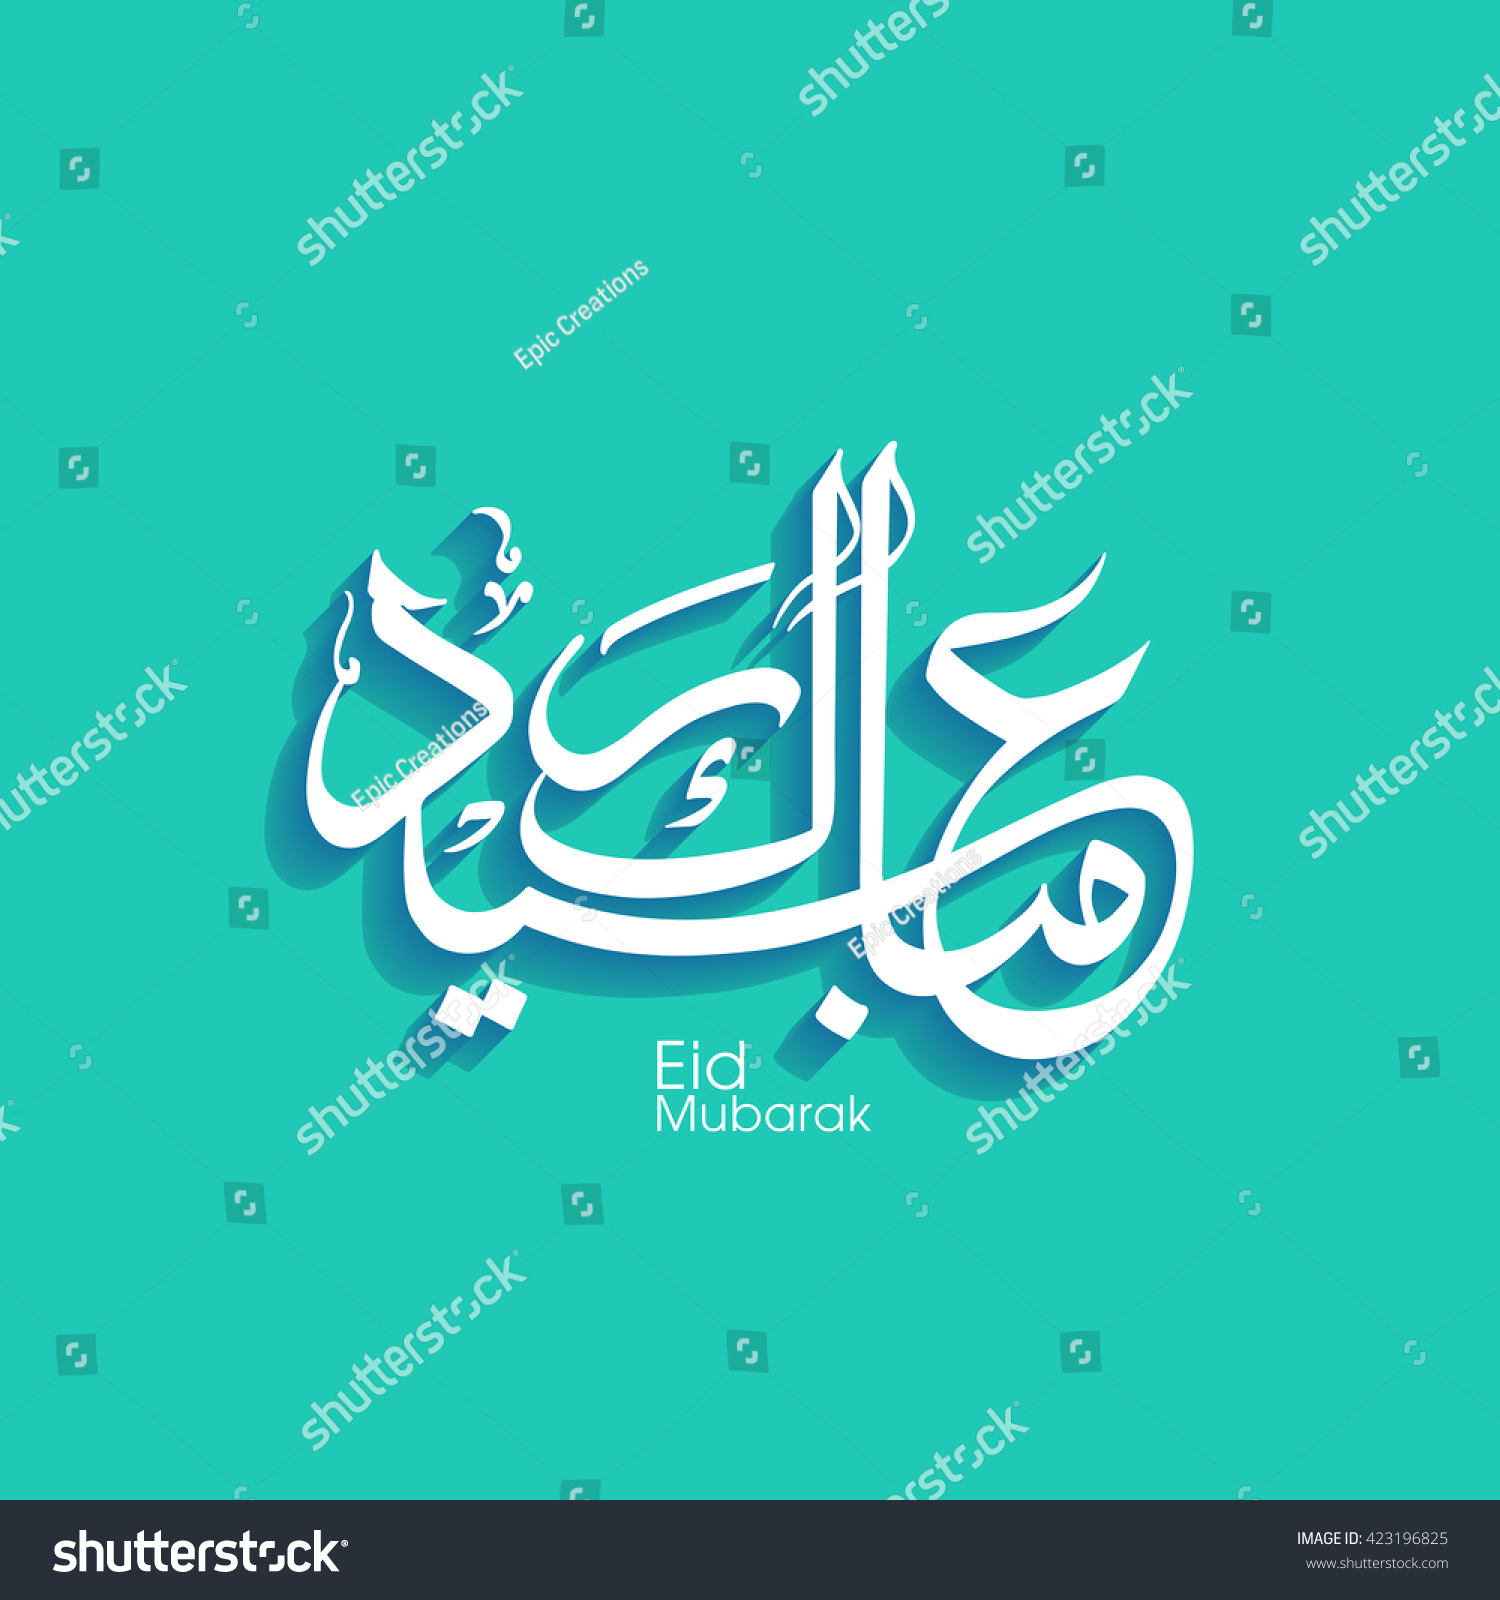 Illustration Of Eid Mubarak With Intricate Arabic Calligraphy For